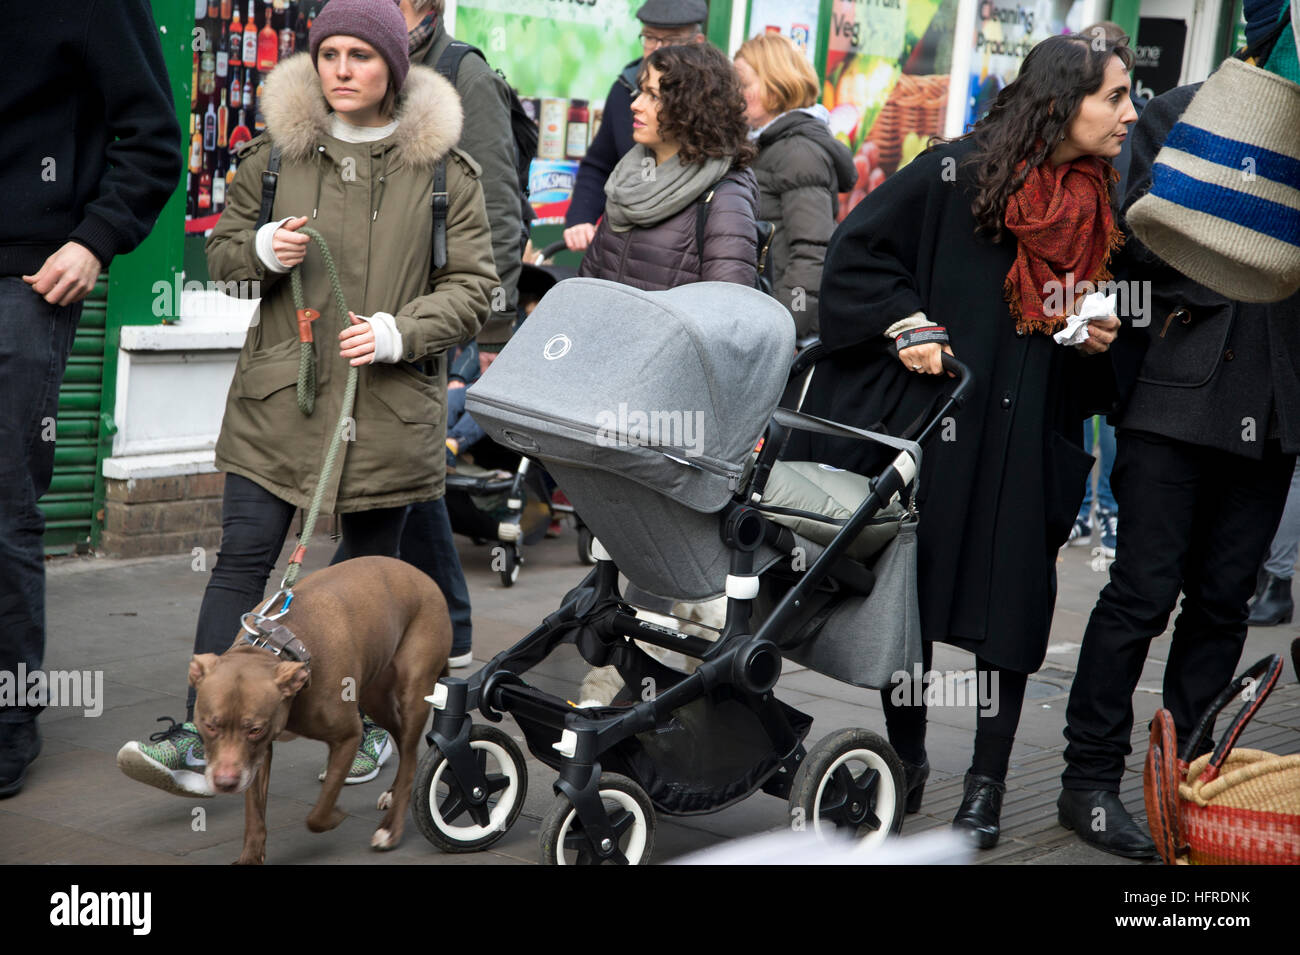 Hackney. Broadway market. Christmas shoppers with dog and pram - Stock Image